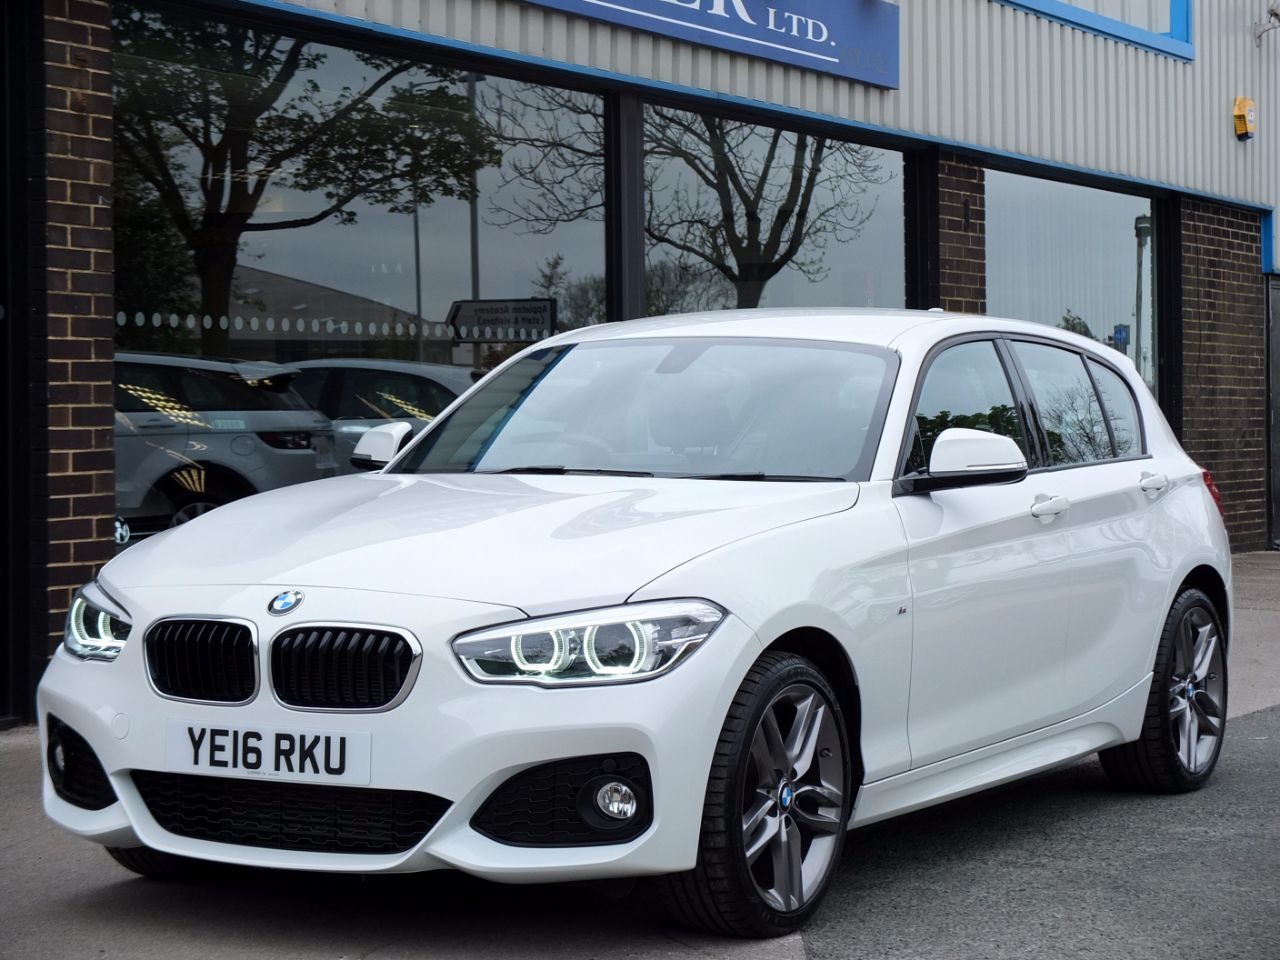 BMW 1 Series 2.0 120d xDrive M Sport 5 door Auto (Leather) 190ps Hatchback Diesel Alpine WhiteBMW 1 Series 2.0 120d xDrive M Sport 5 door Auto (Leather) 190ps Hatchback Diesel Alpine White at fa Roper Ltd Bradford